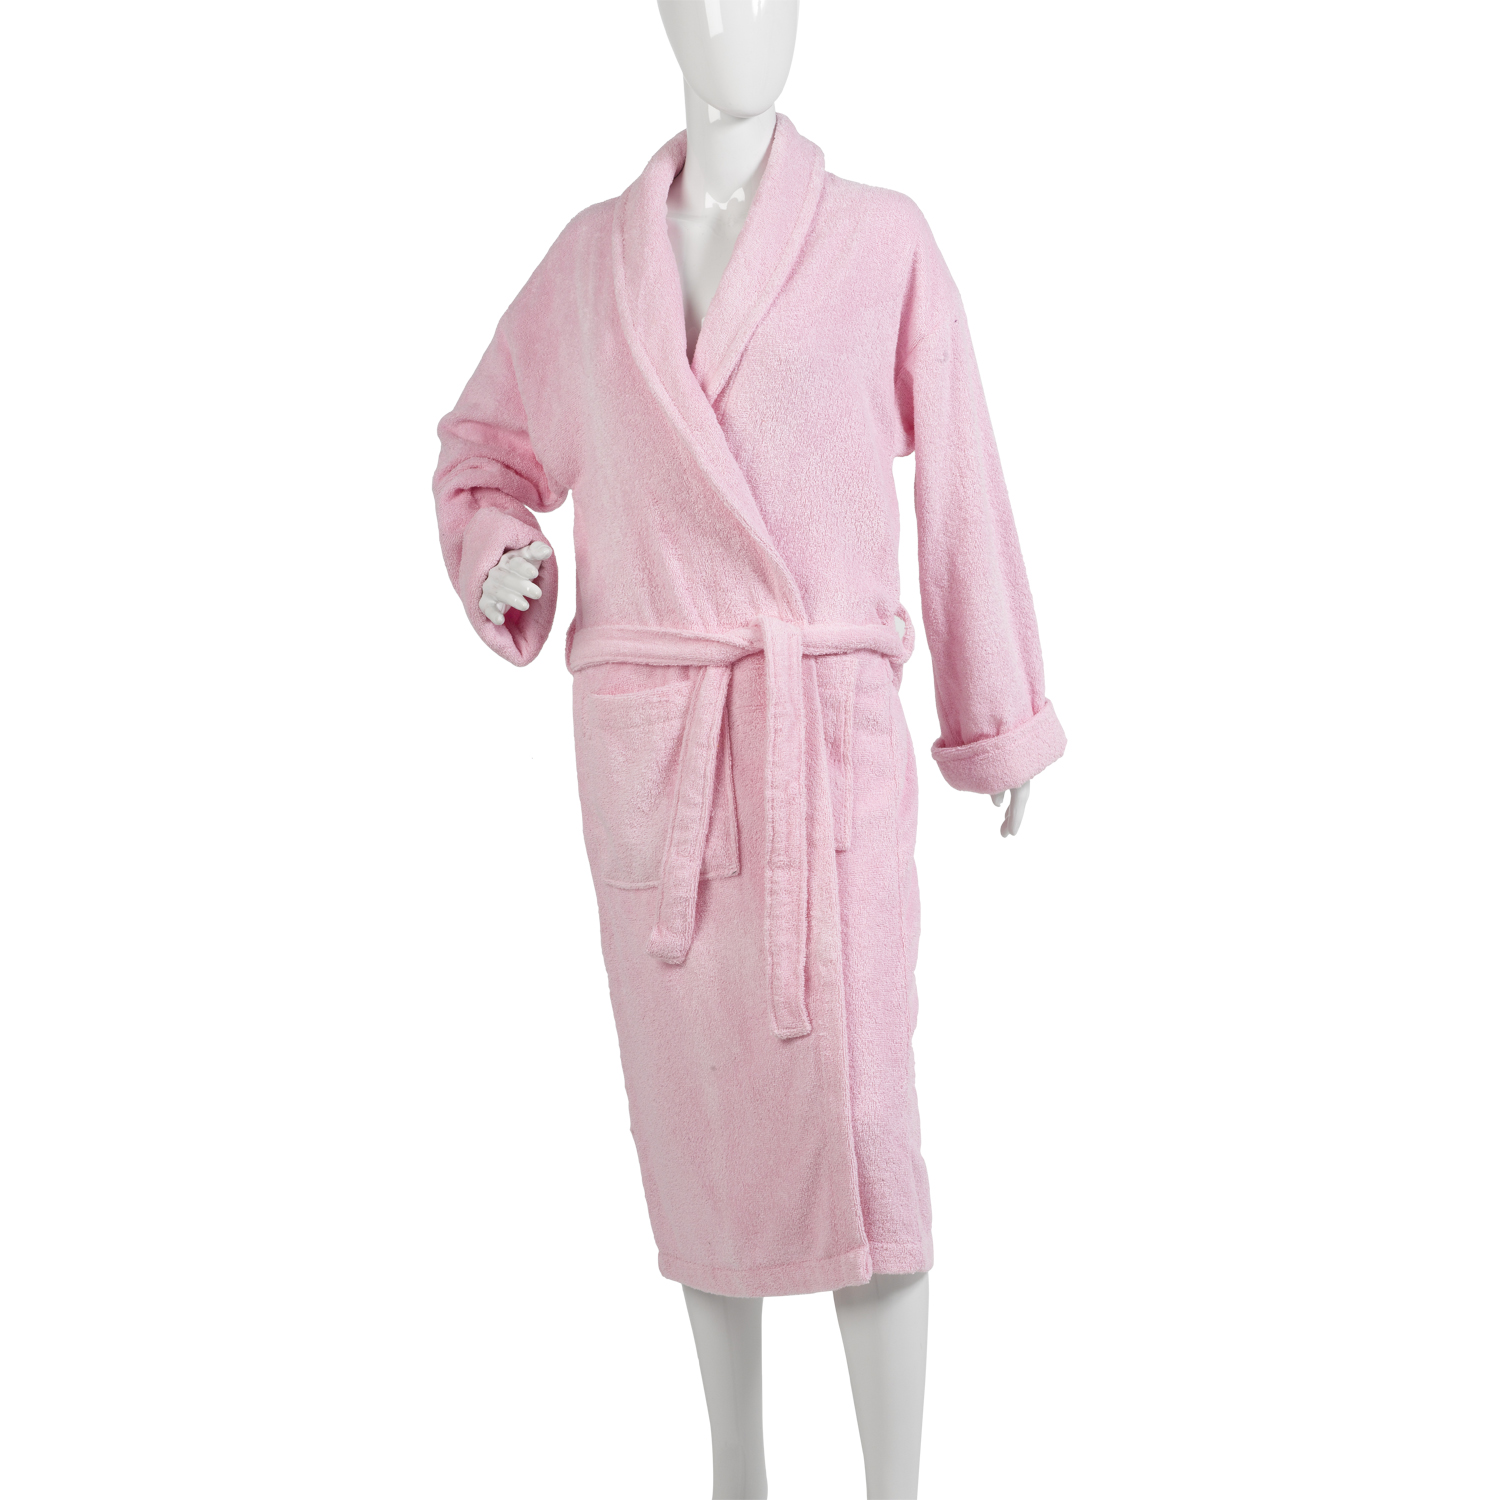 Ladies 100% Cotton Towelling Bathrobe Womens Plain Nightwear Wrap ...